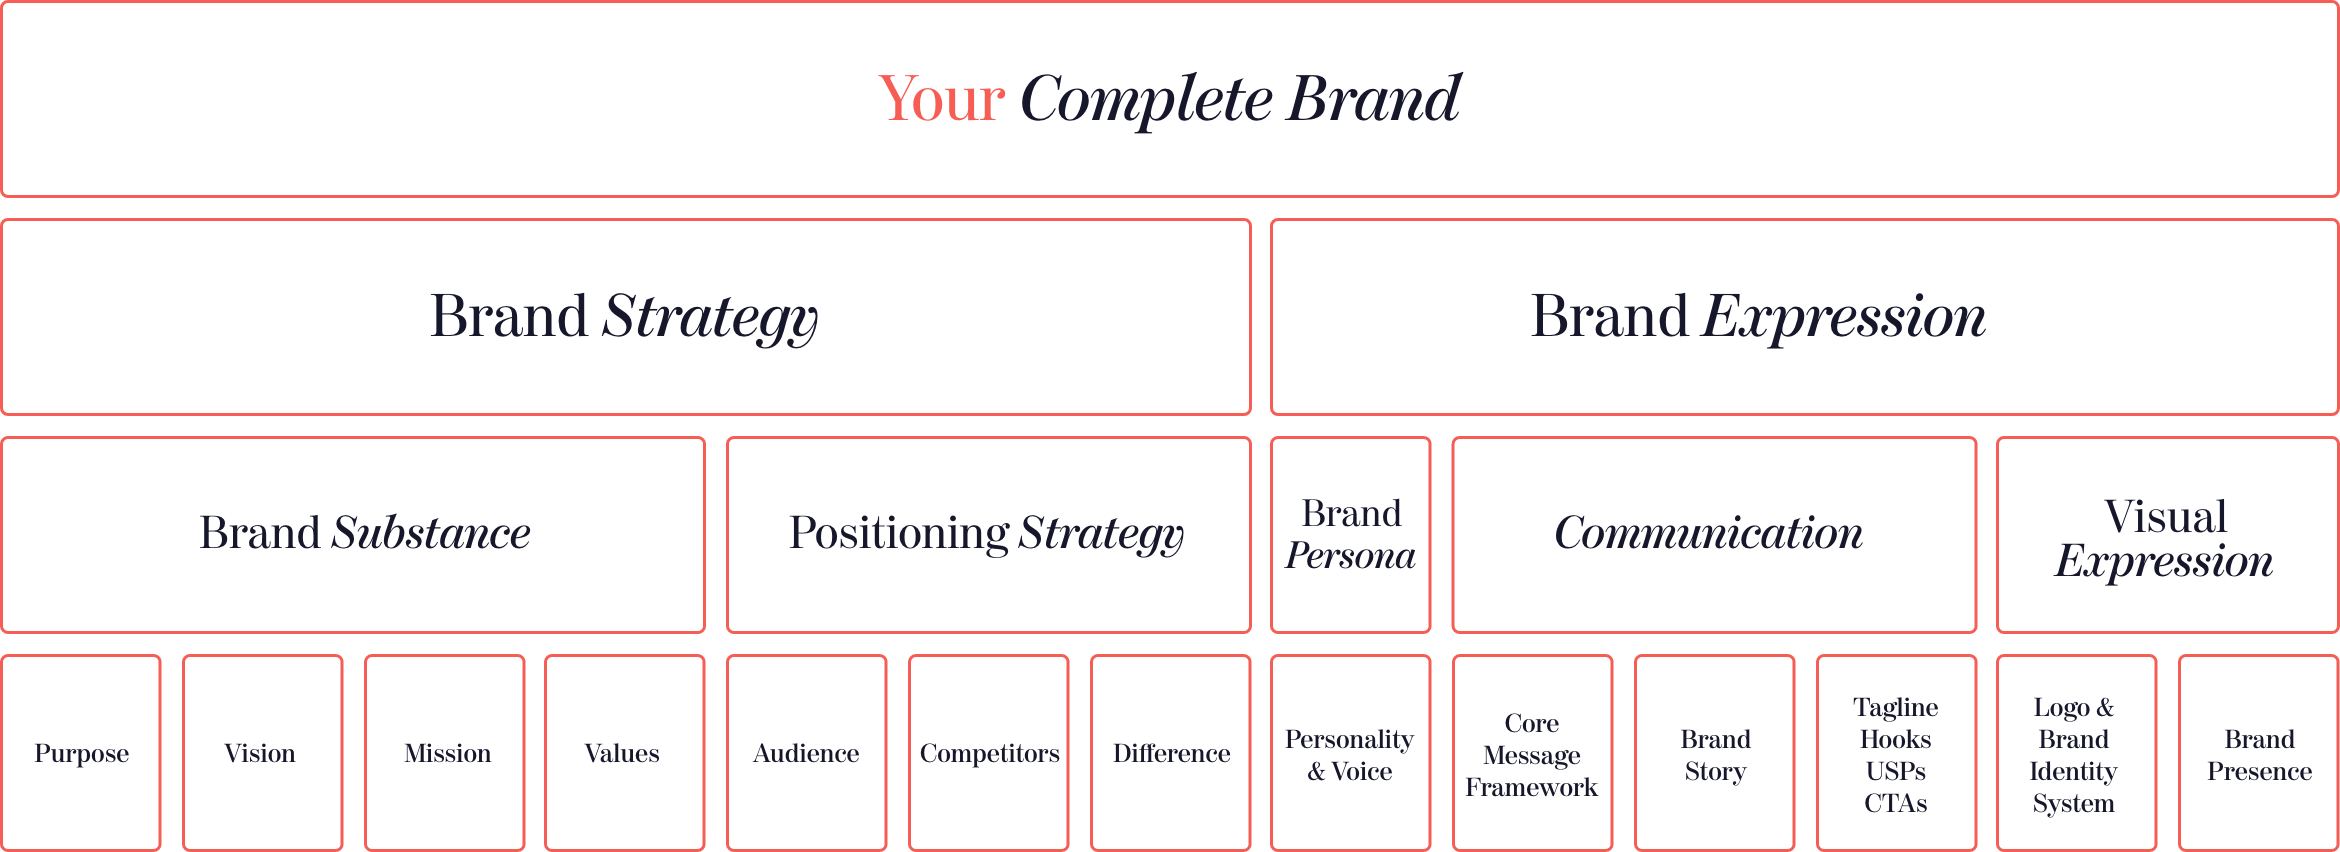 Your Complete Brand